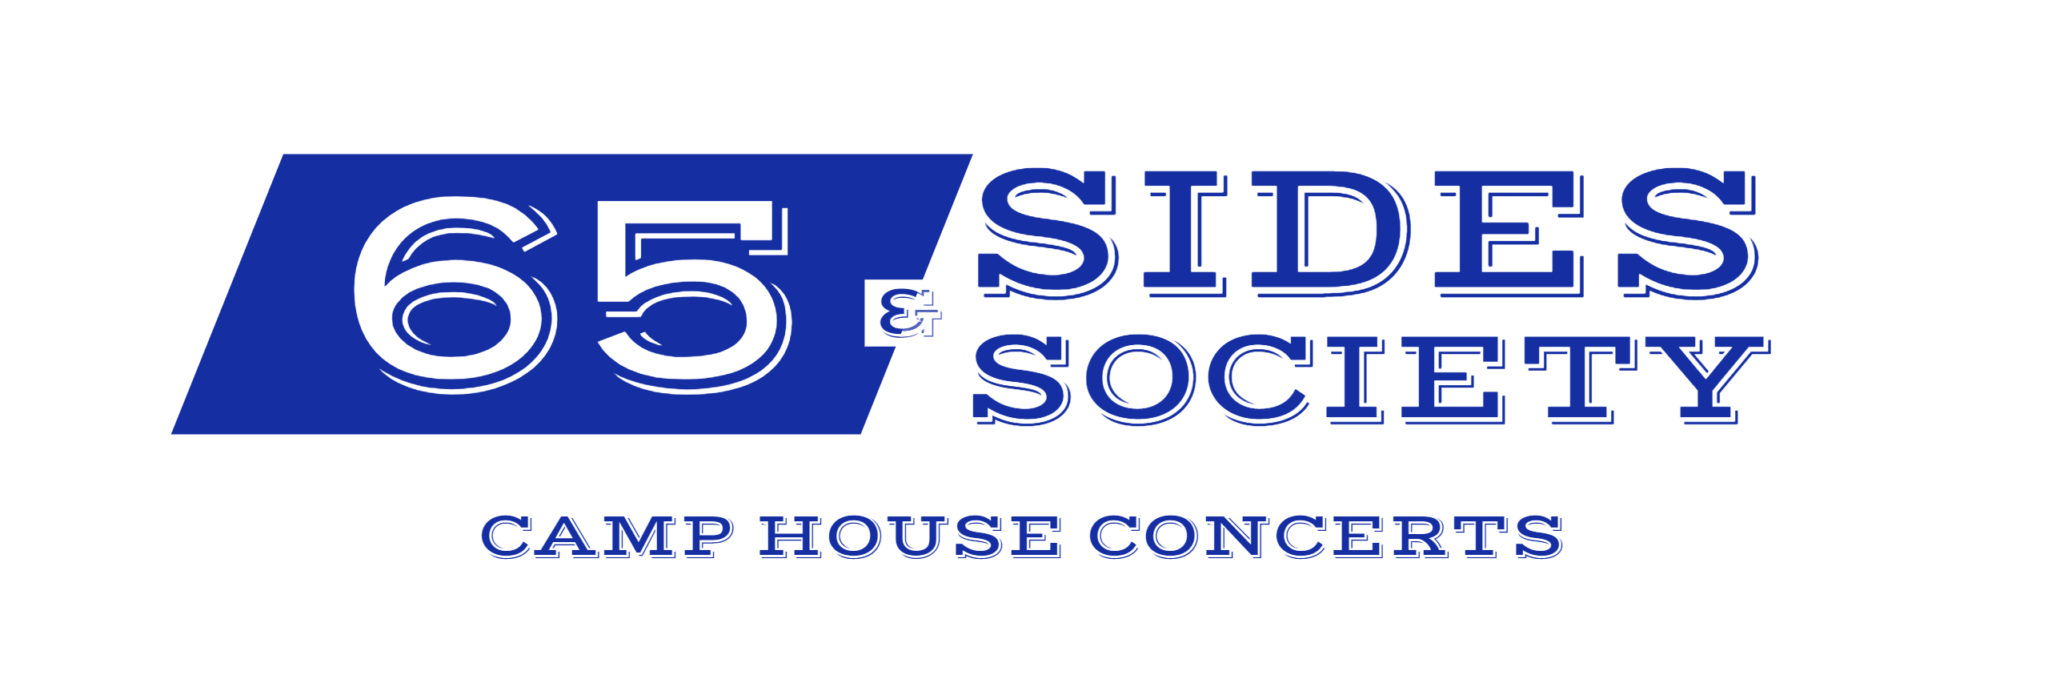 What is the 65 & Sides Society?